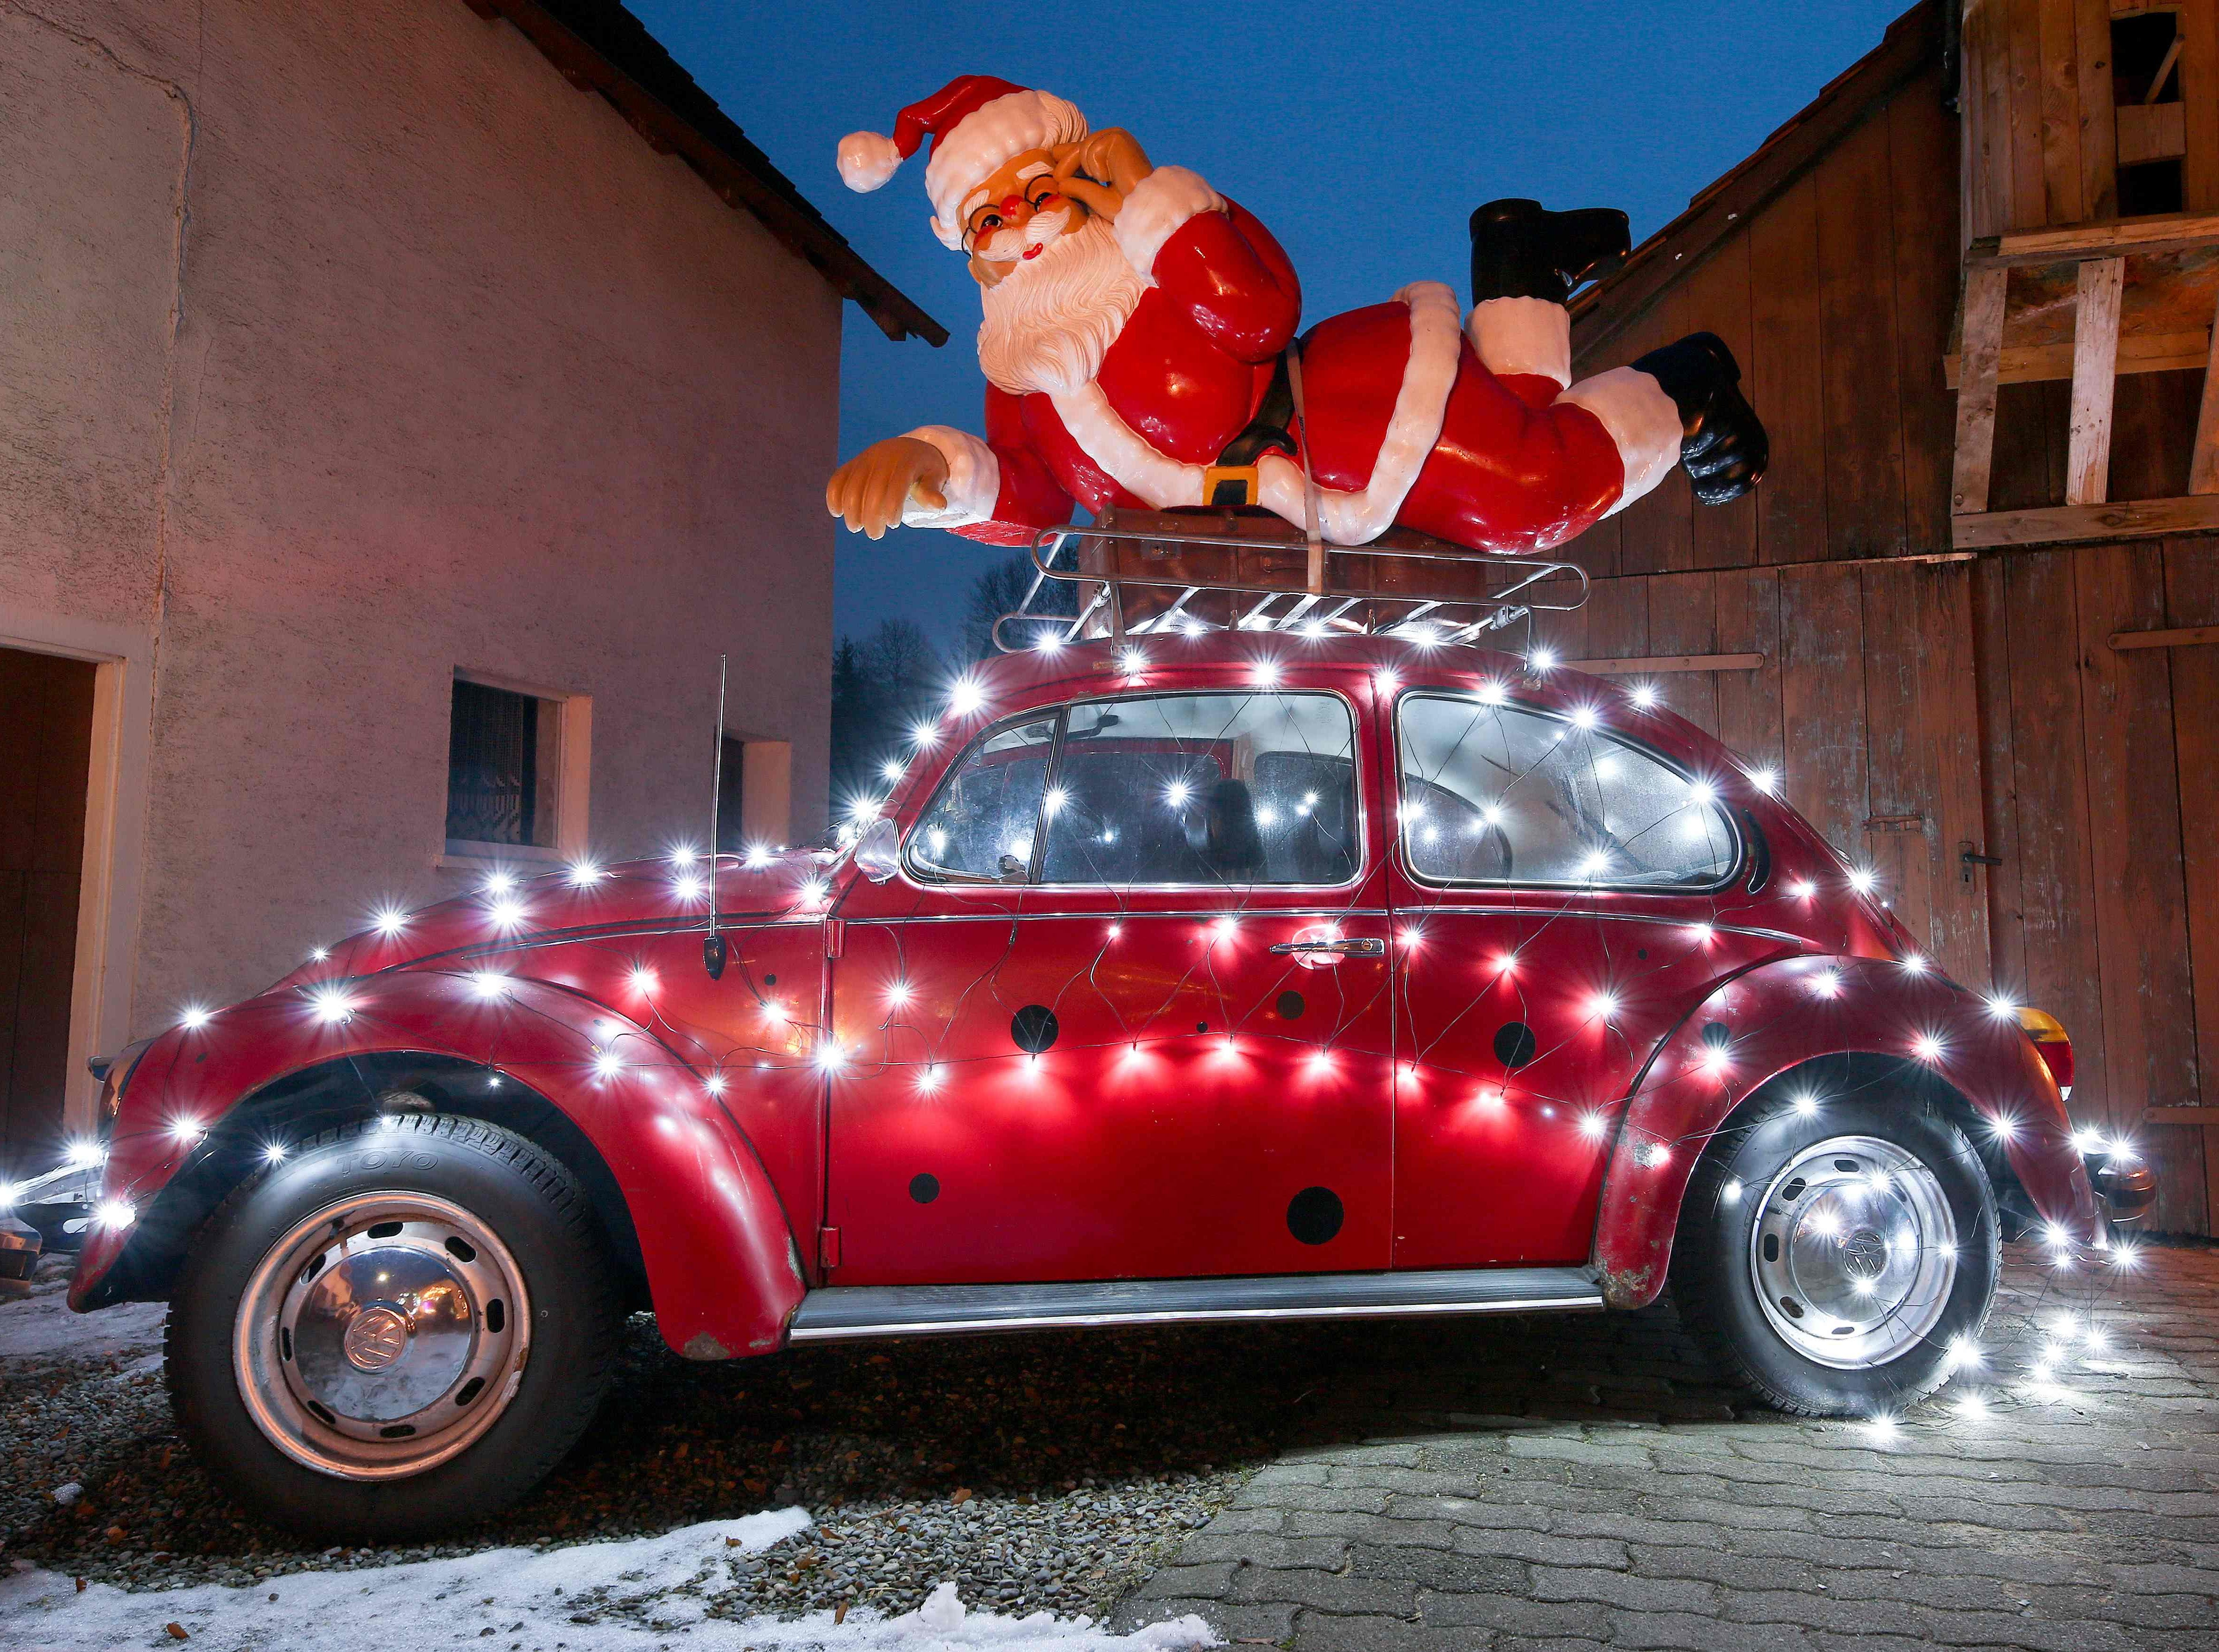 A Santa Claus sculpture is fixed on the roof rack of a Volkswagen Beetle vintage car decorated with a light chain on Dec. 19, 2018 in front of a house in Ertingen, southern Germany.